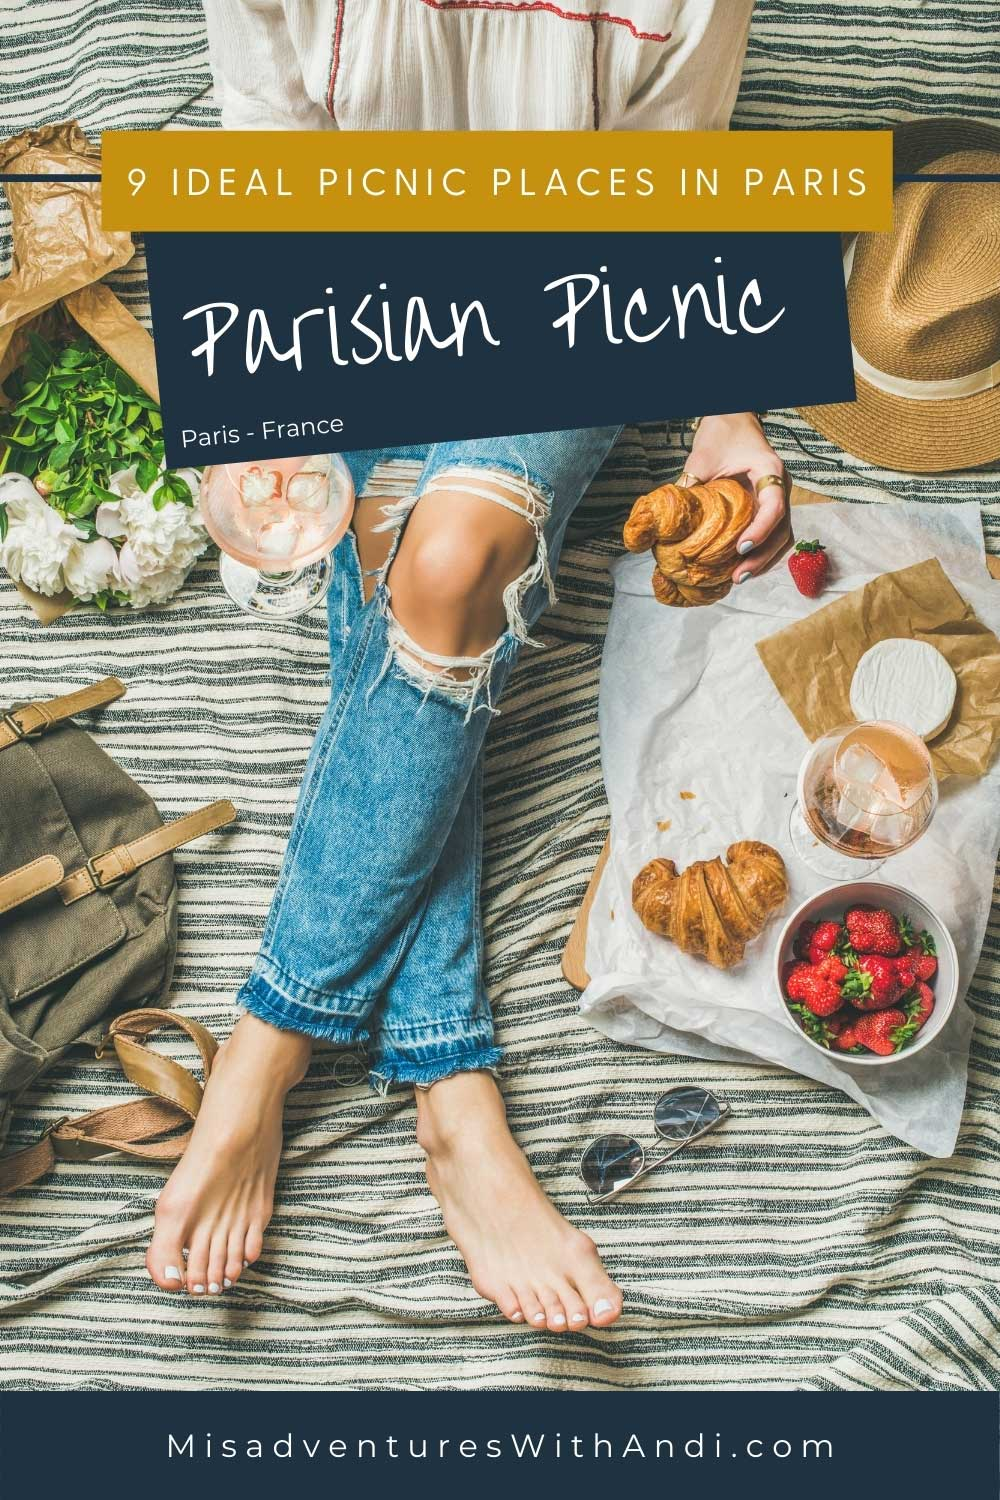 A Parisian Picnic: 9 Ideal Picnic Places in Paris